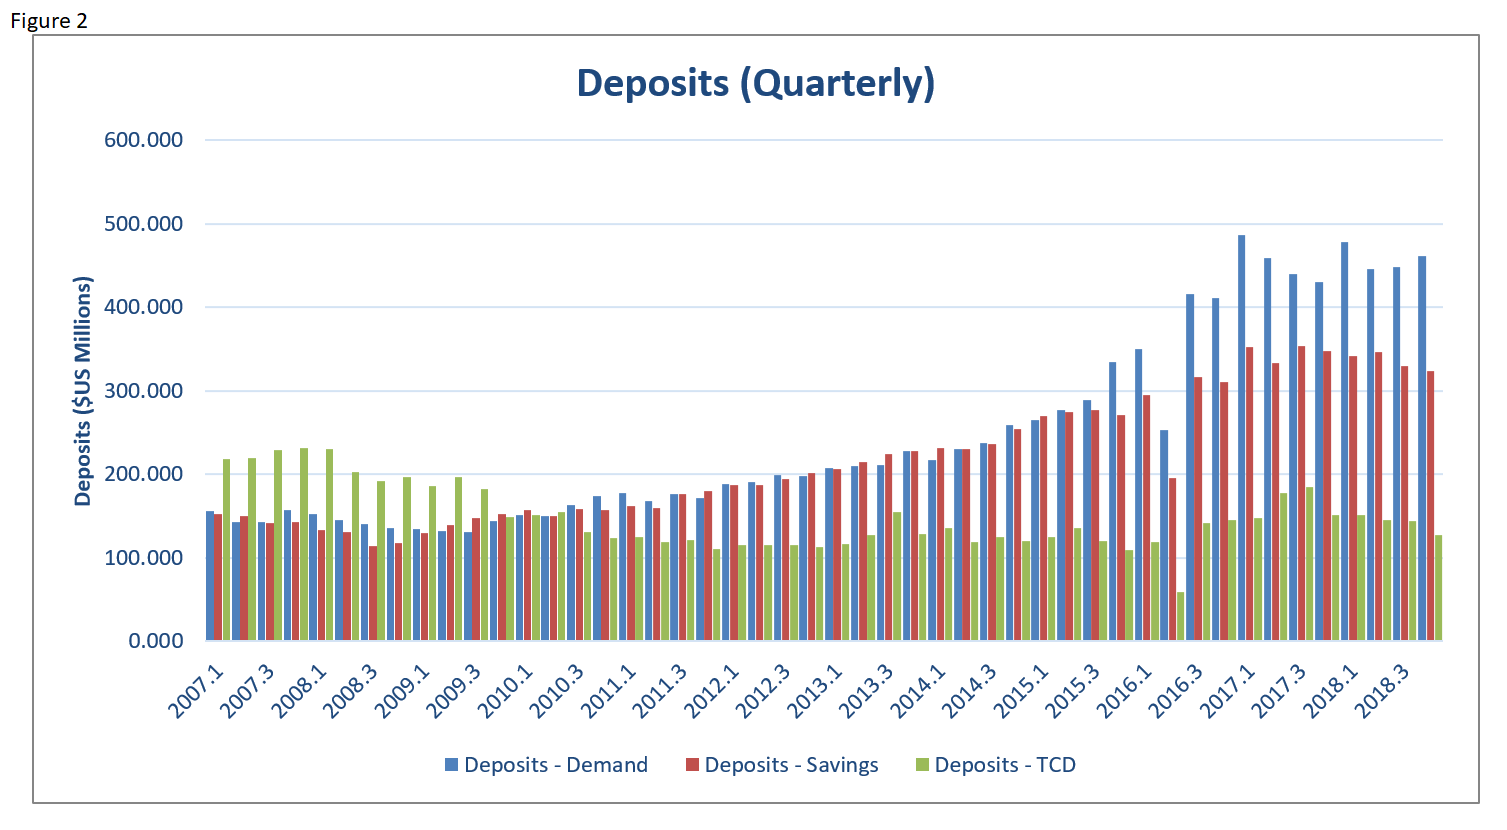 EI 2018 Banking Deposits Quarterly